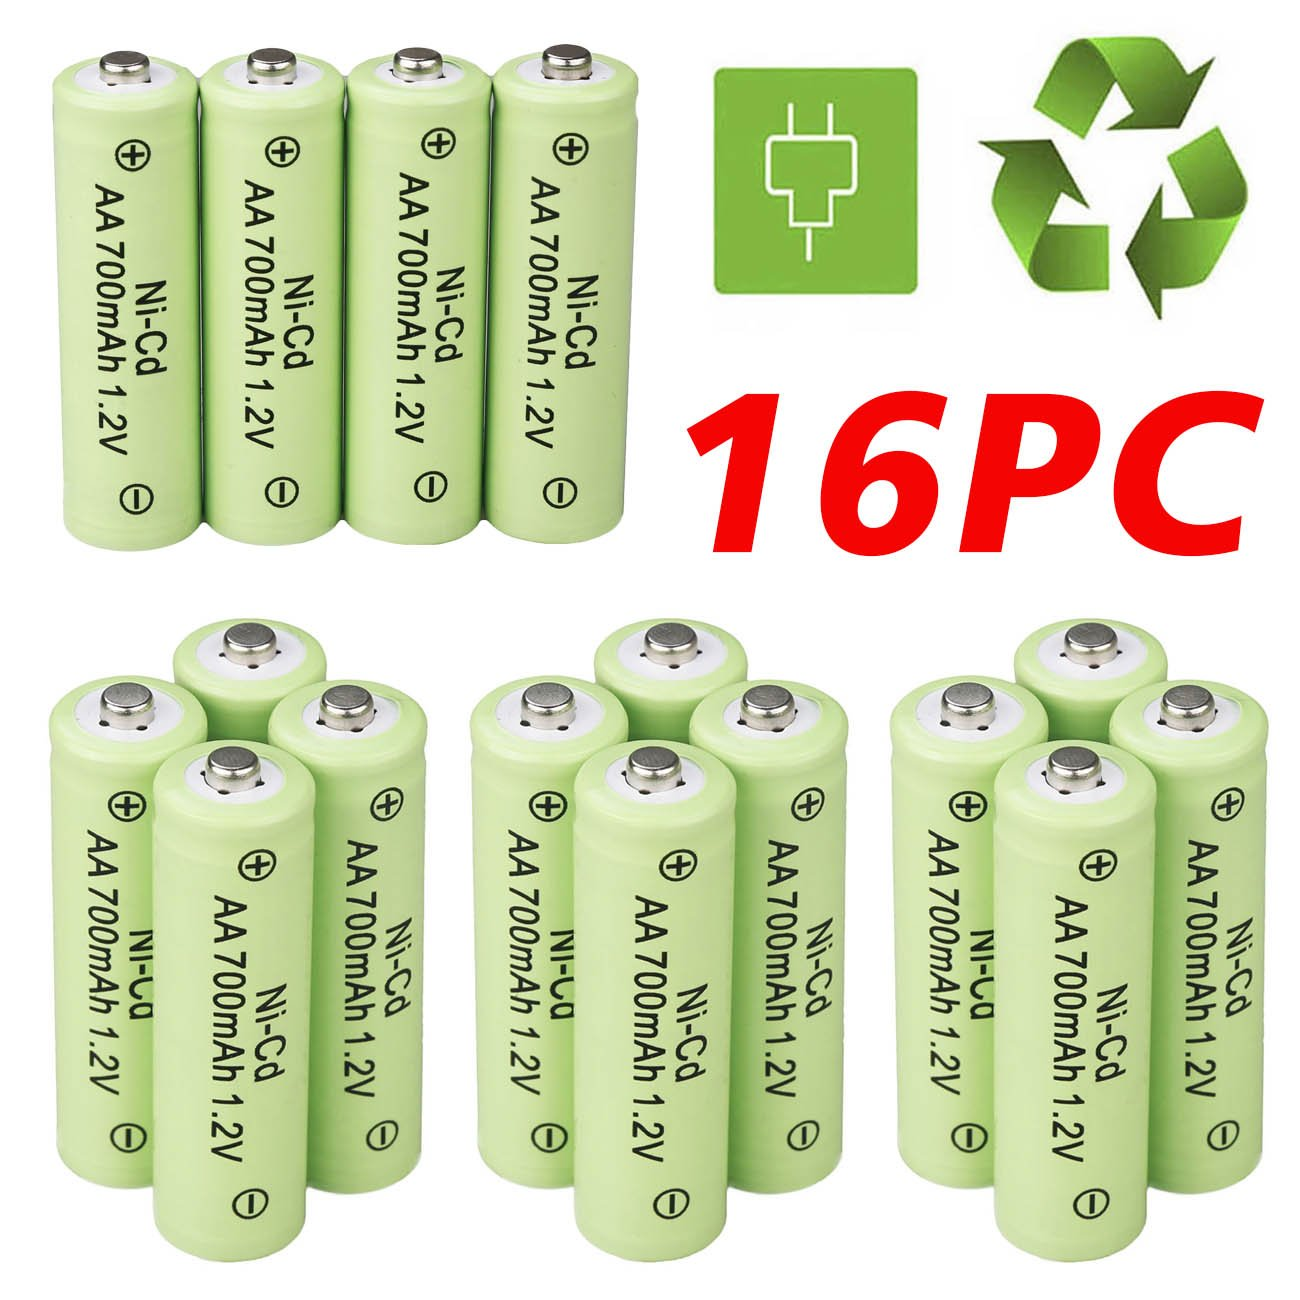 ShineTool 16 Pack AA Batteries, 700mAh AA 1.2V Battery Rechargeable for Solar Light LED Flashlight Toy Car